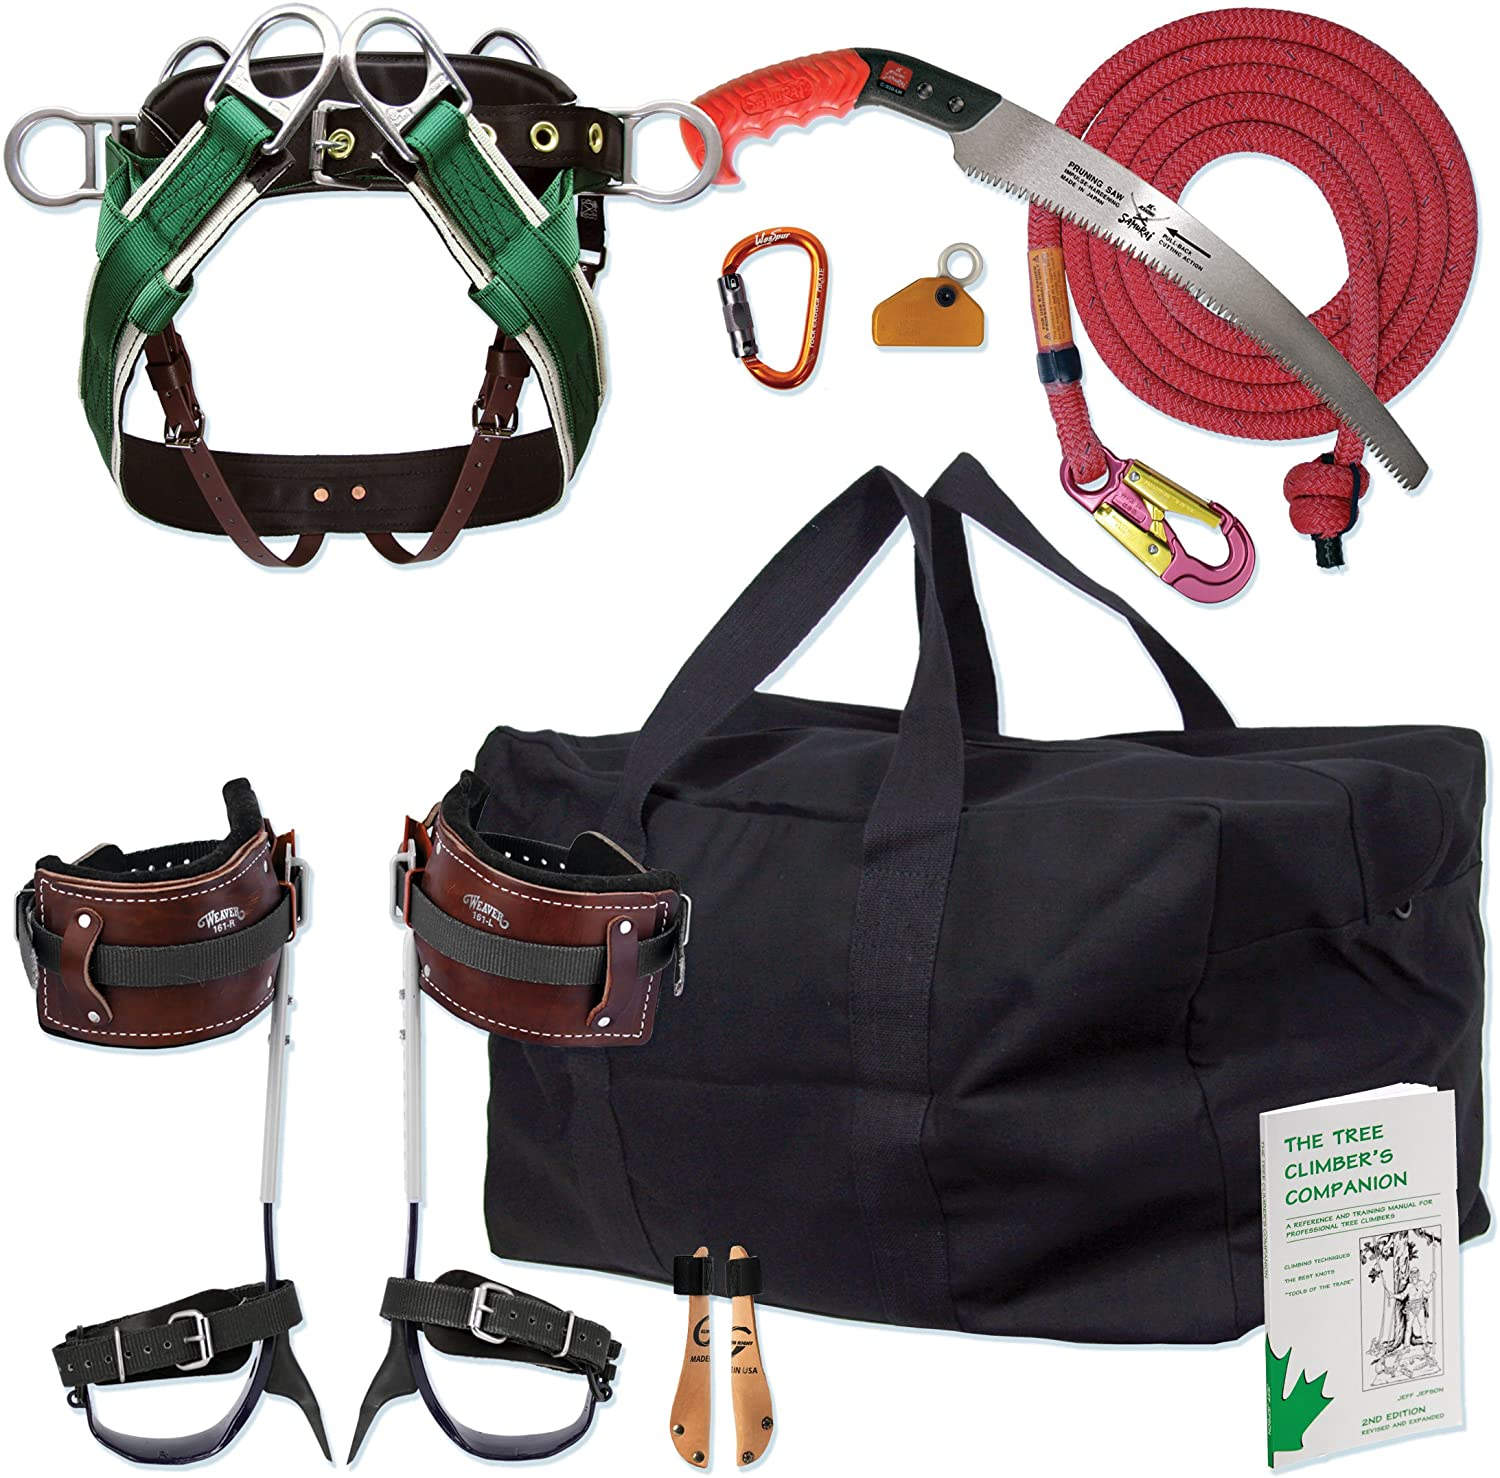 11 Best Tree Climbing Gear Kit in 2021 That You Need to Carry-Entry-Level Spur Kit